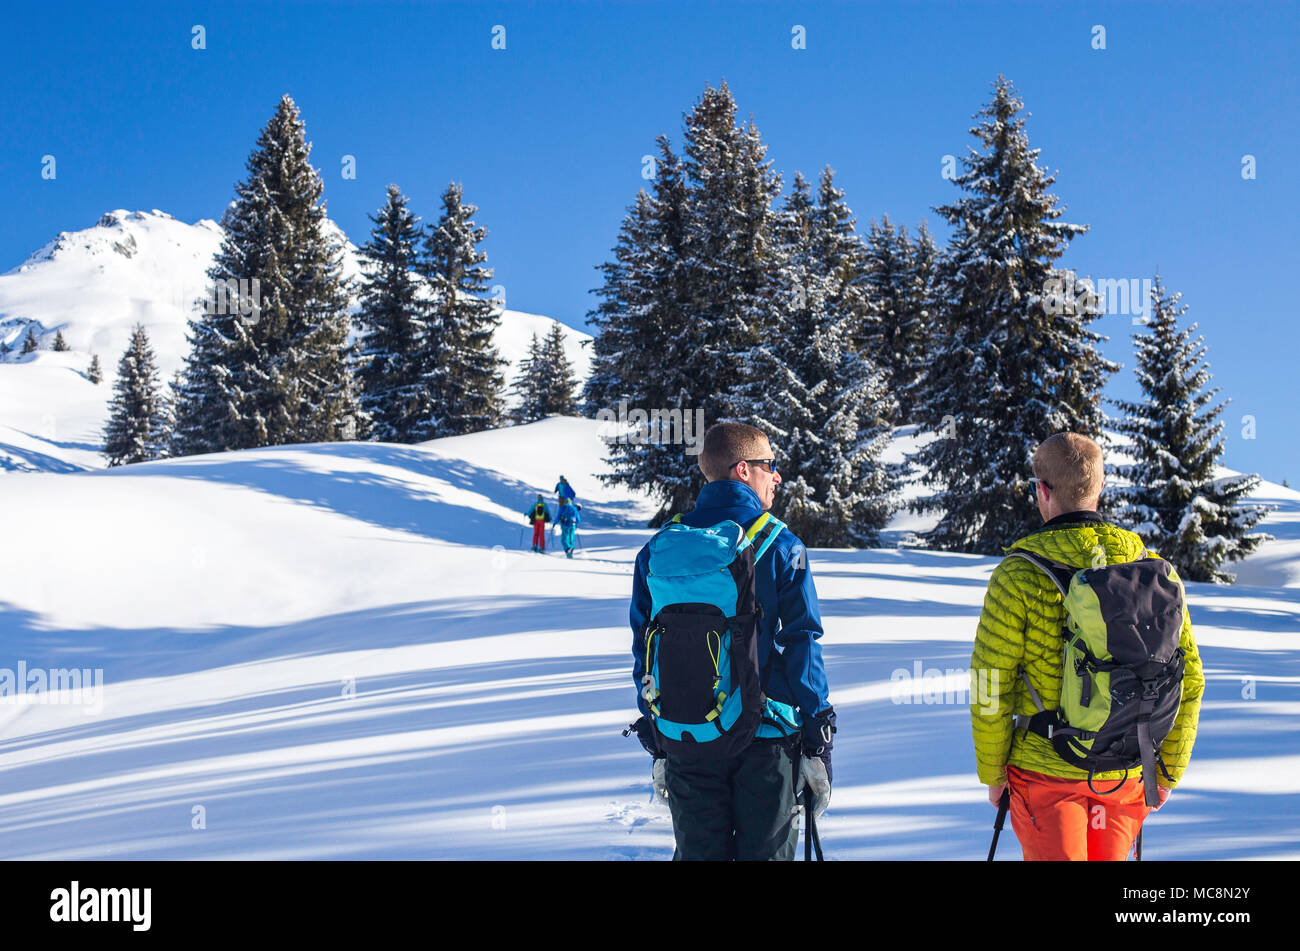 Backcountry skiing in Rhone Alpes of France on one of the closest summits to Seez village - Clopet. - Stock Image